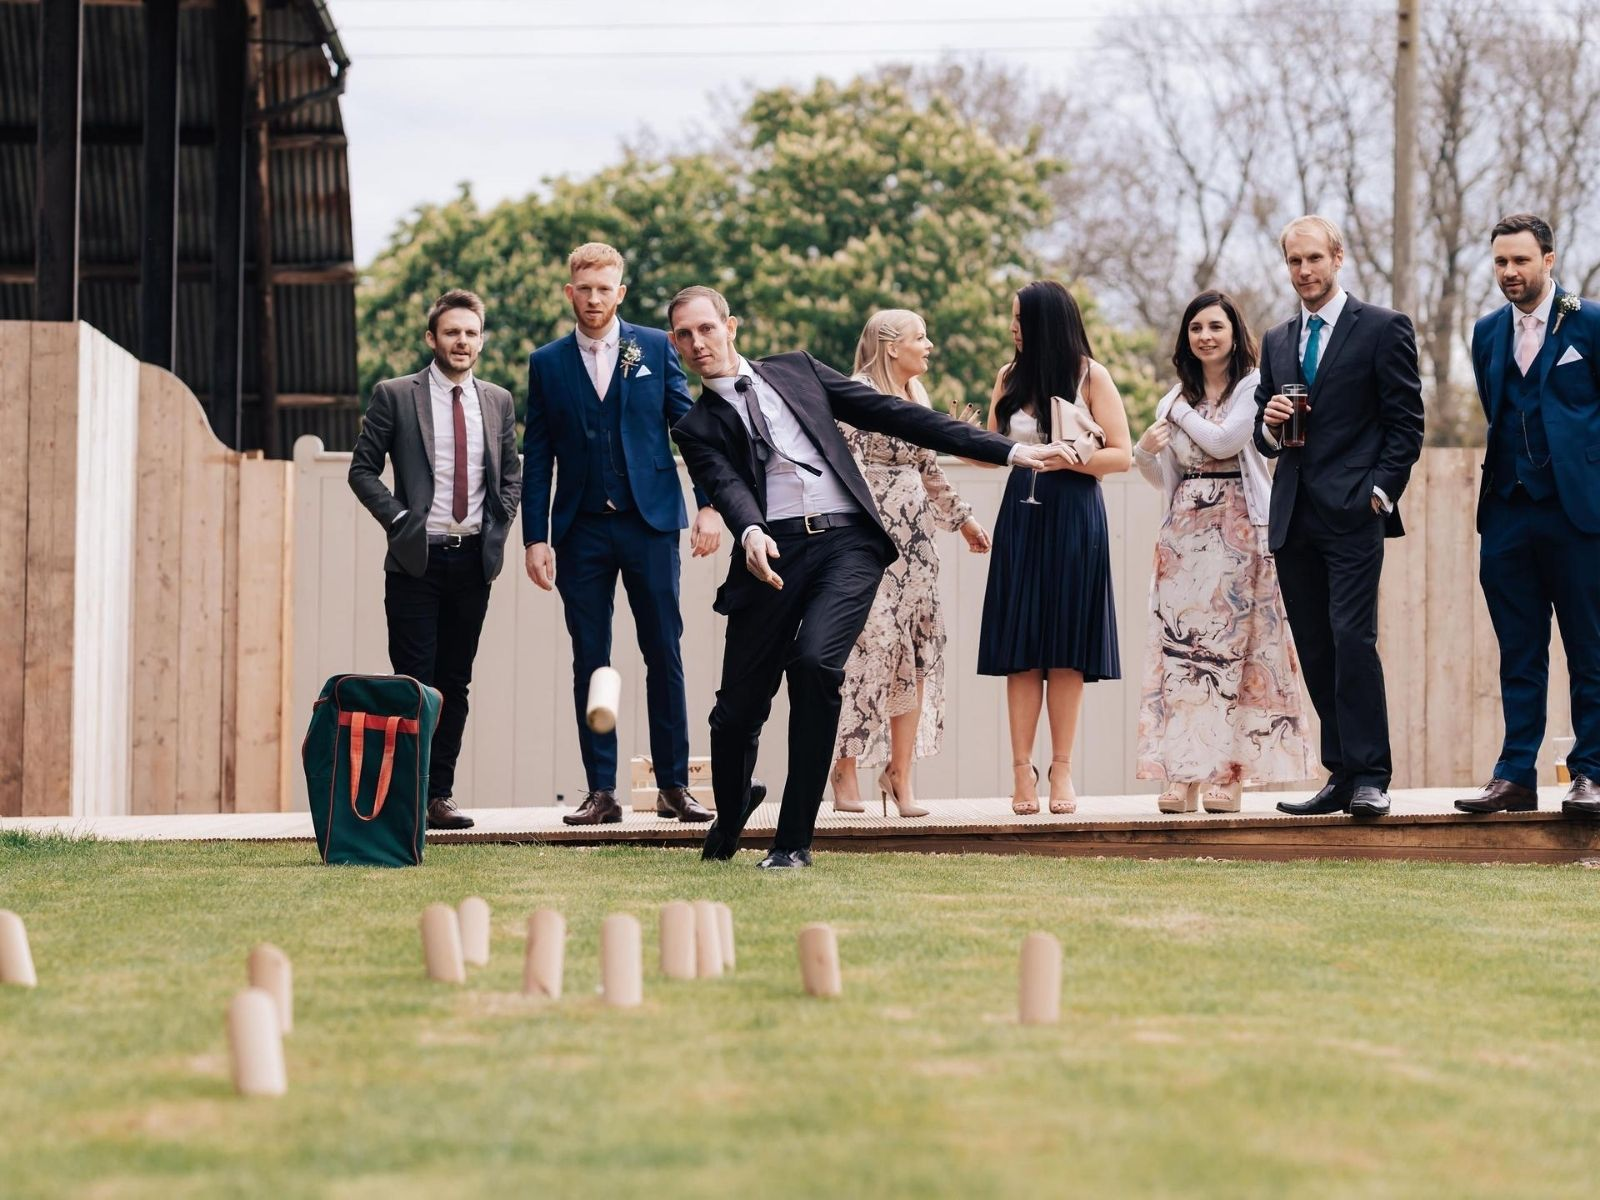 wedding guests playing outdoor wedding entertainment